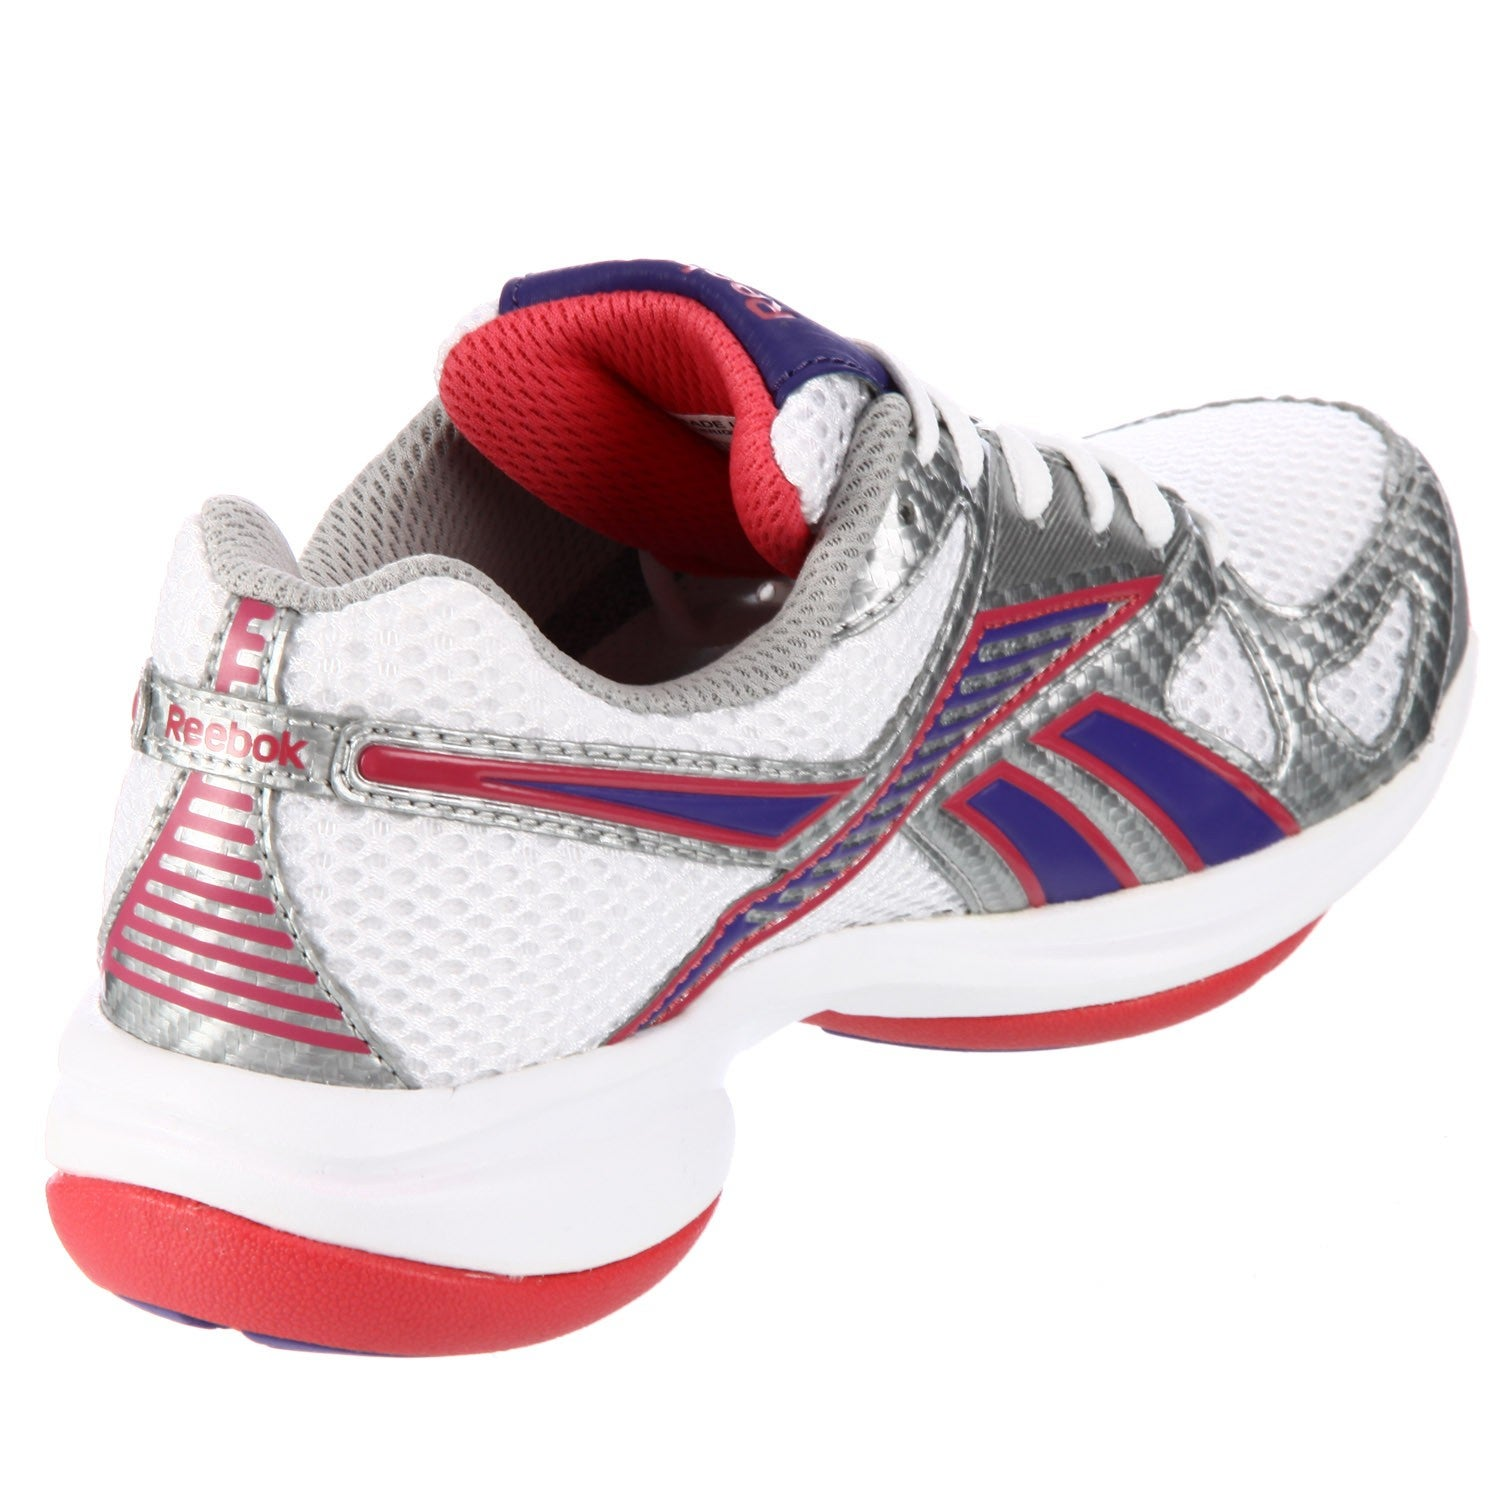 c875f7b3d5f Shop Reebok Women s  Simplytone US  Athletic Shoes - Free Shipping On  Orders Over  45 - Overstock - 6545084